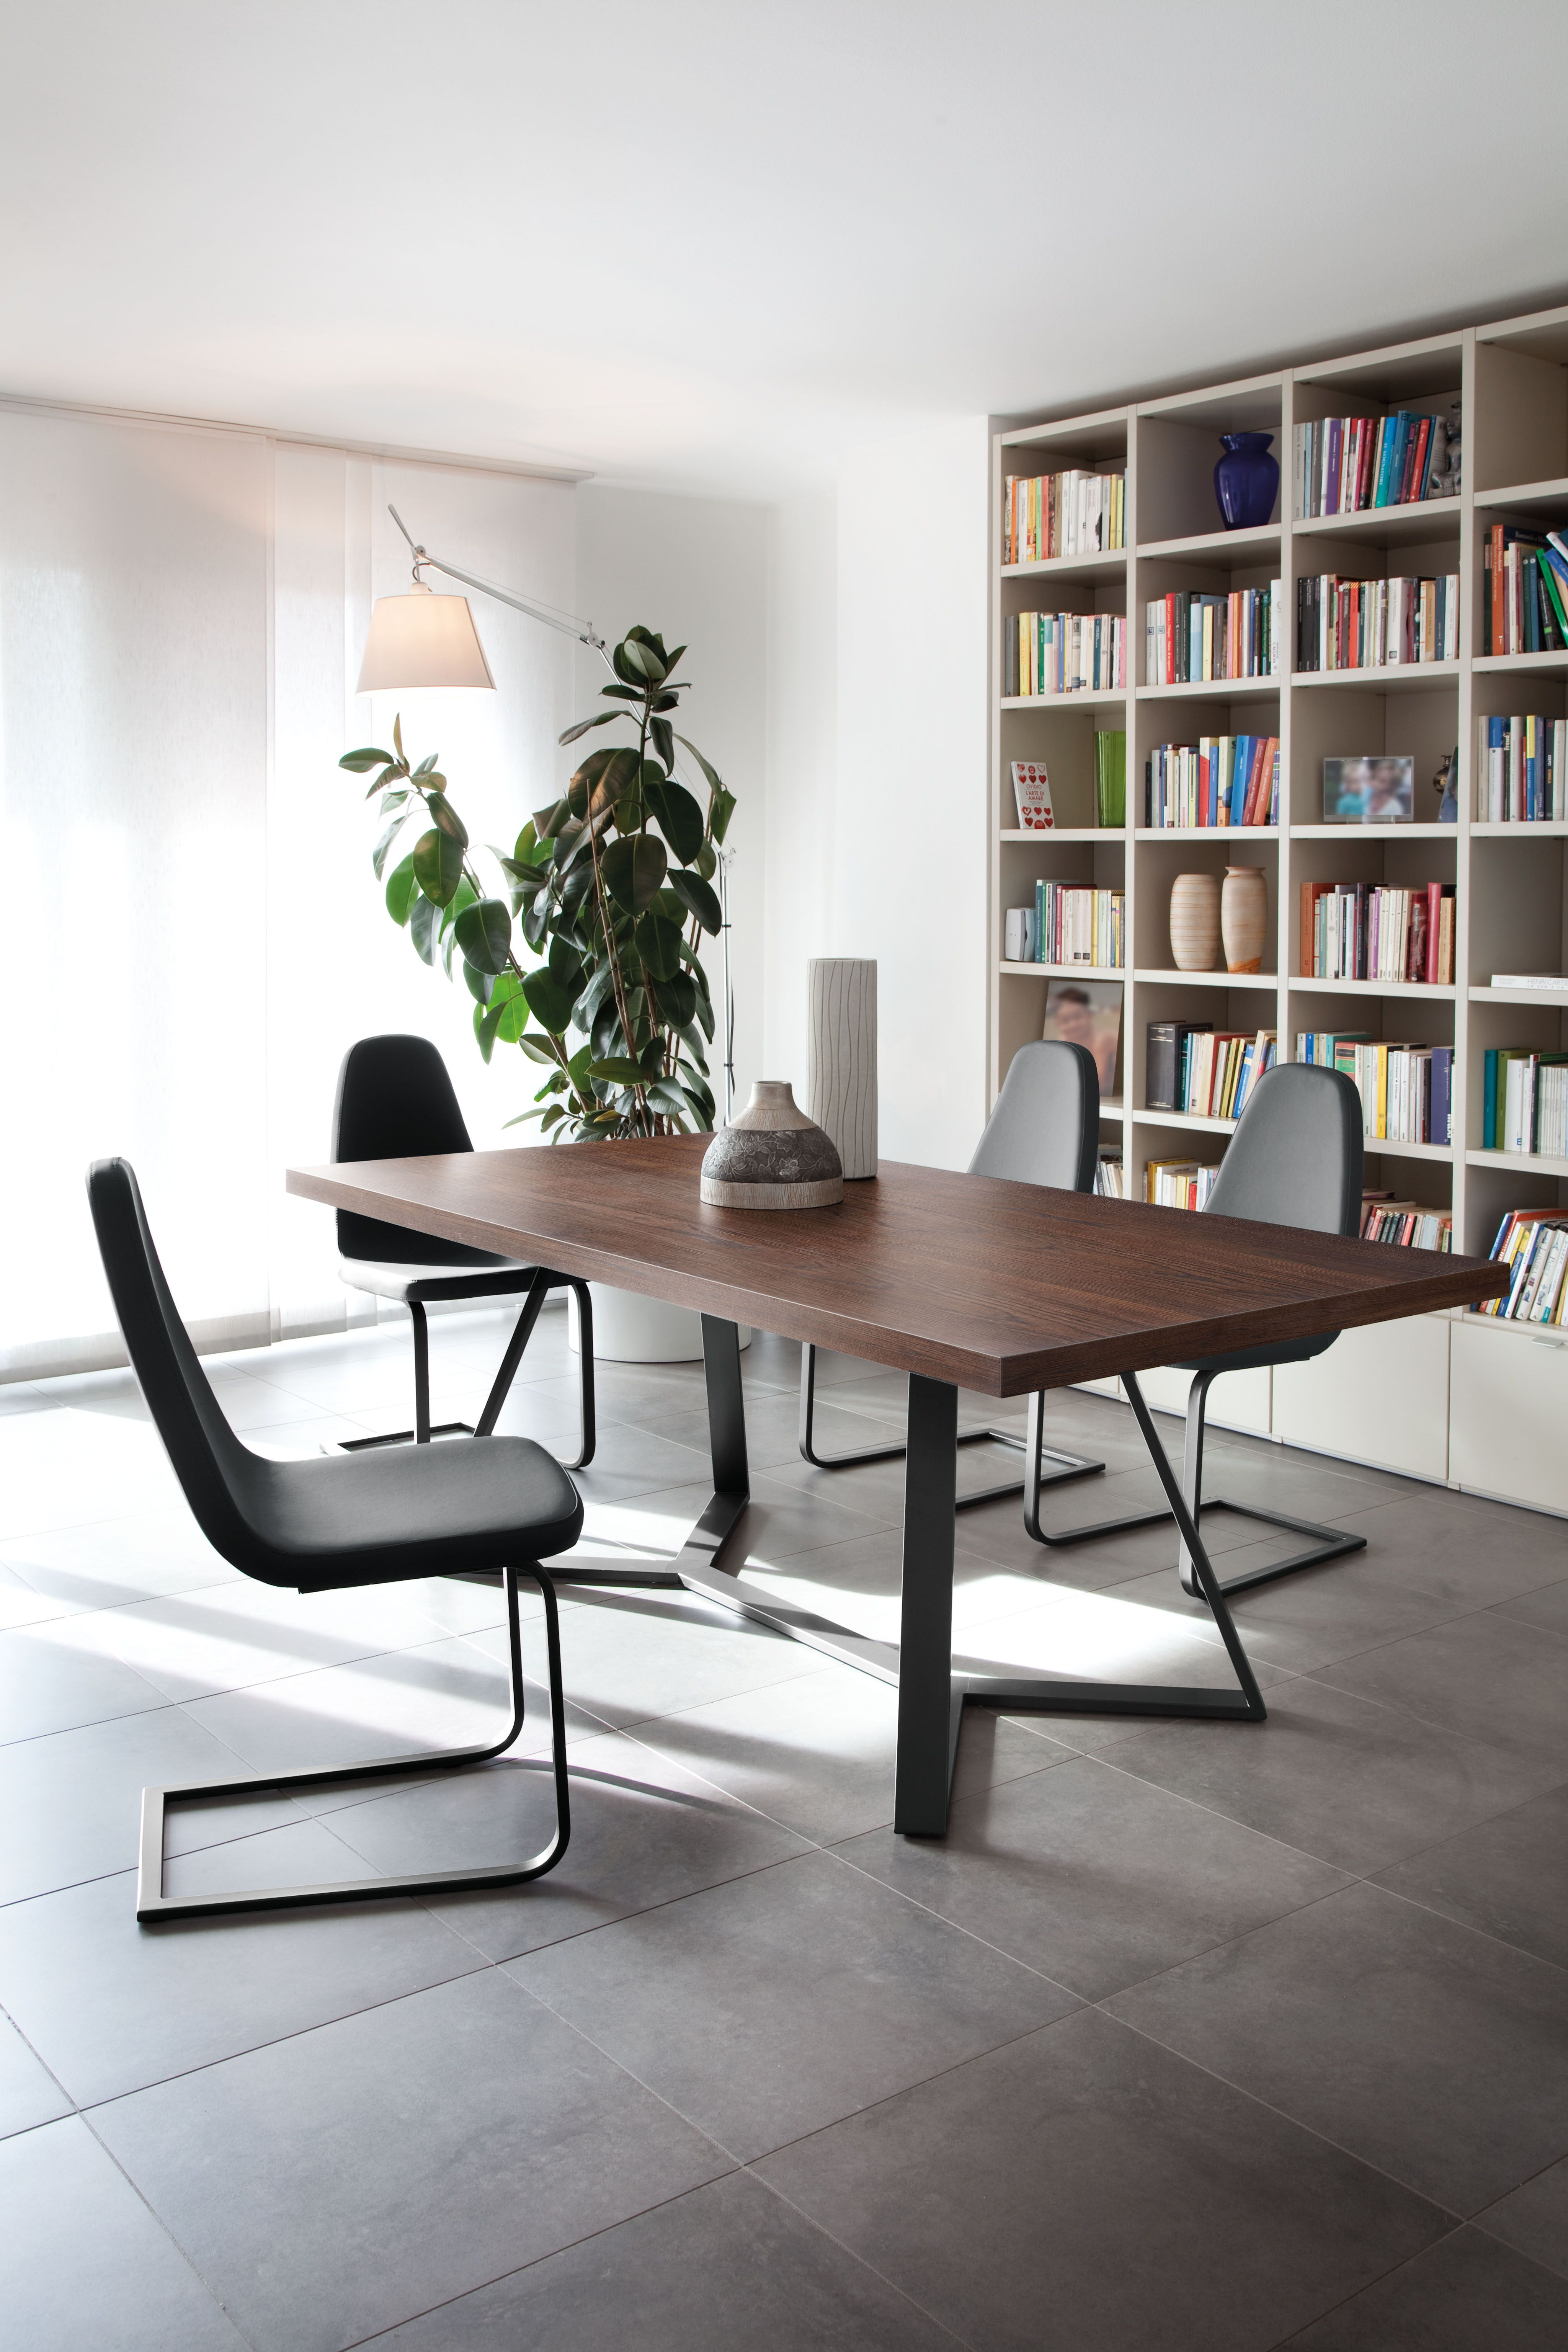 75 Beautiful Small Dining Room Pictures & Ideas | Houzz